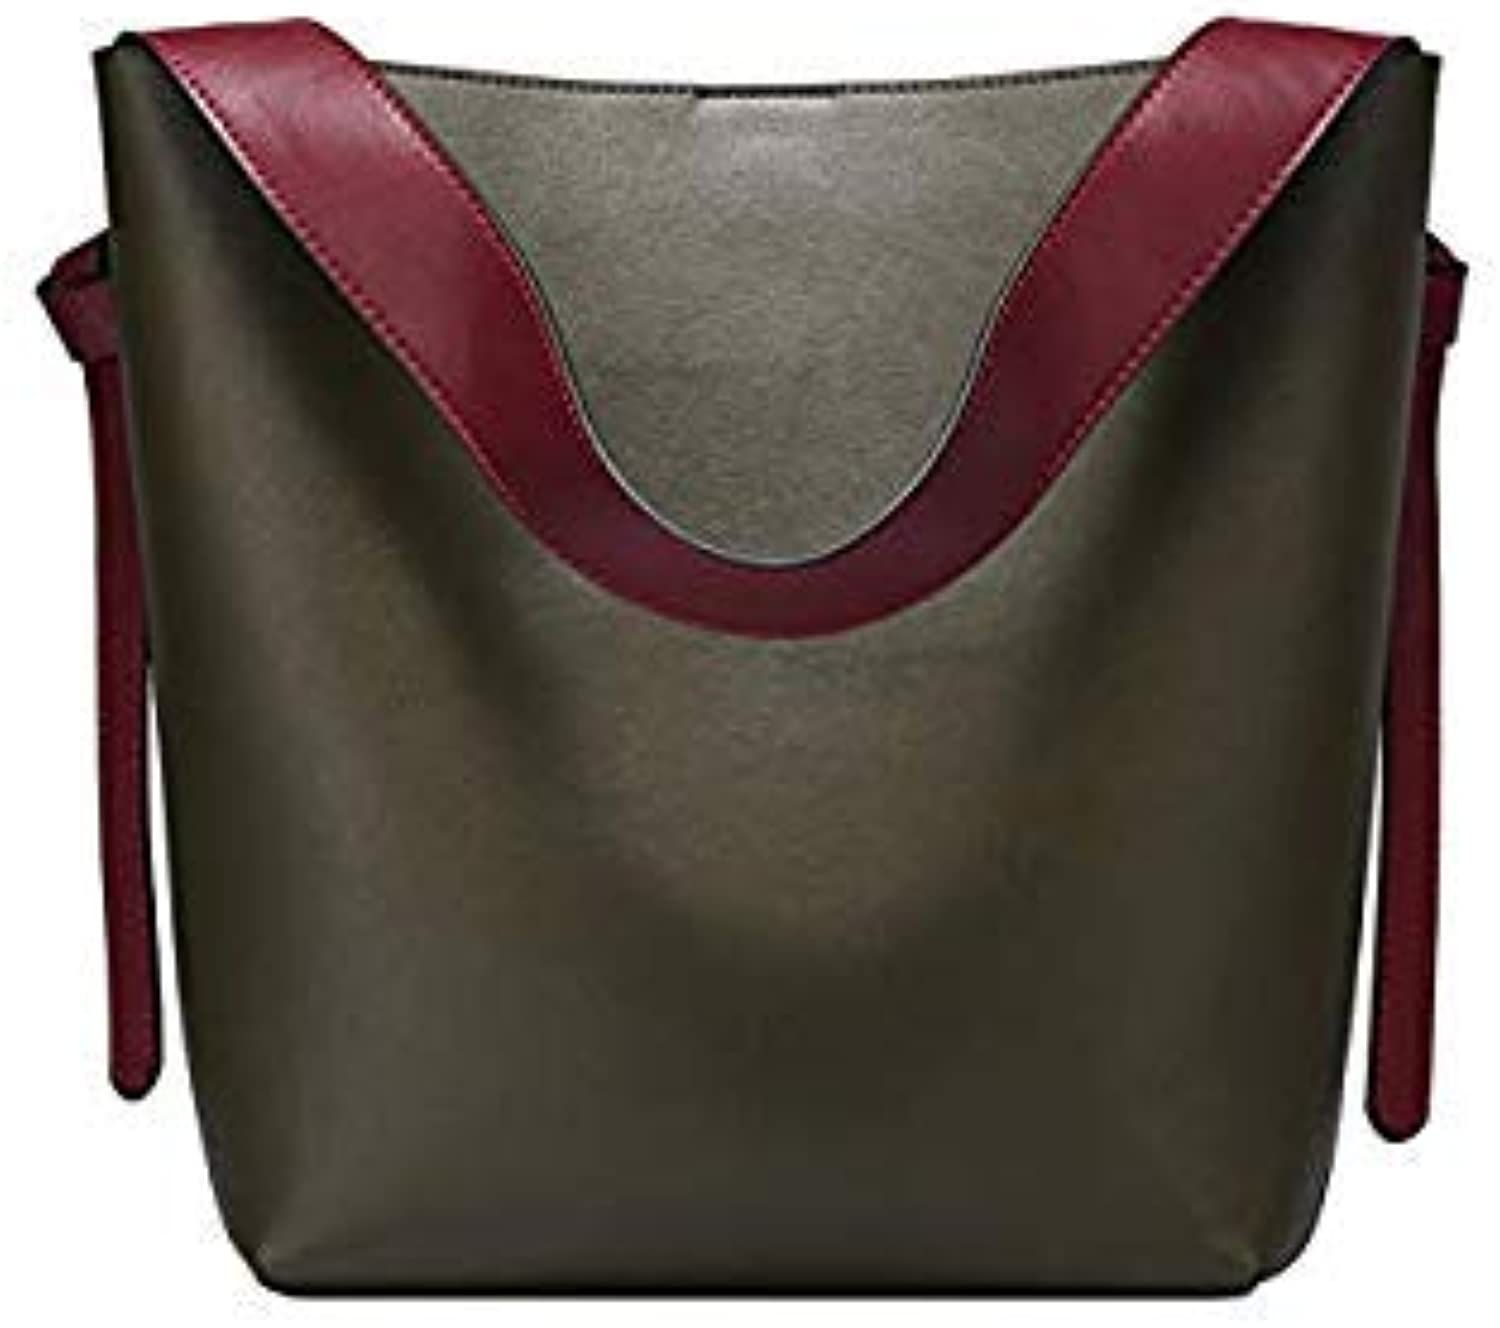 Bloomerang Nesitu New High Quality Designer Luxury Grey Green Red Split Leather Women Shoulder Bags Shopping Bag Handbags Totes  M0754 color 4